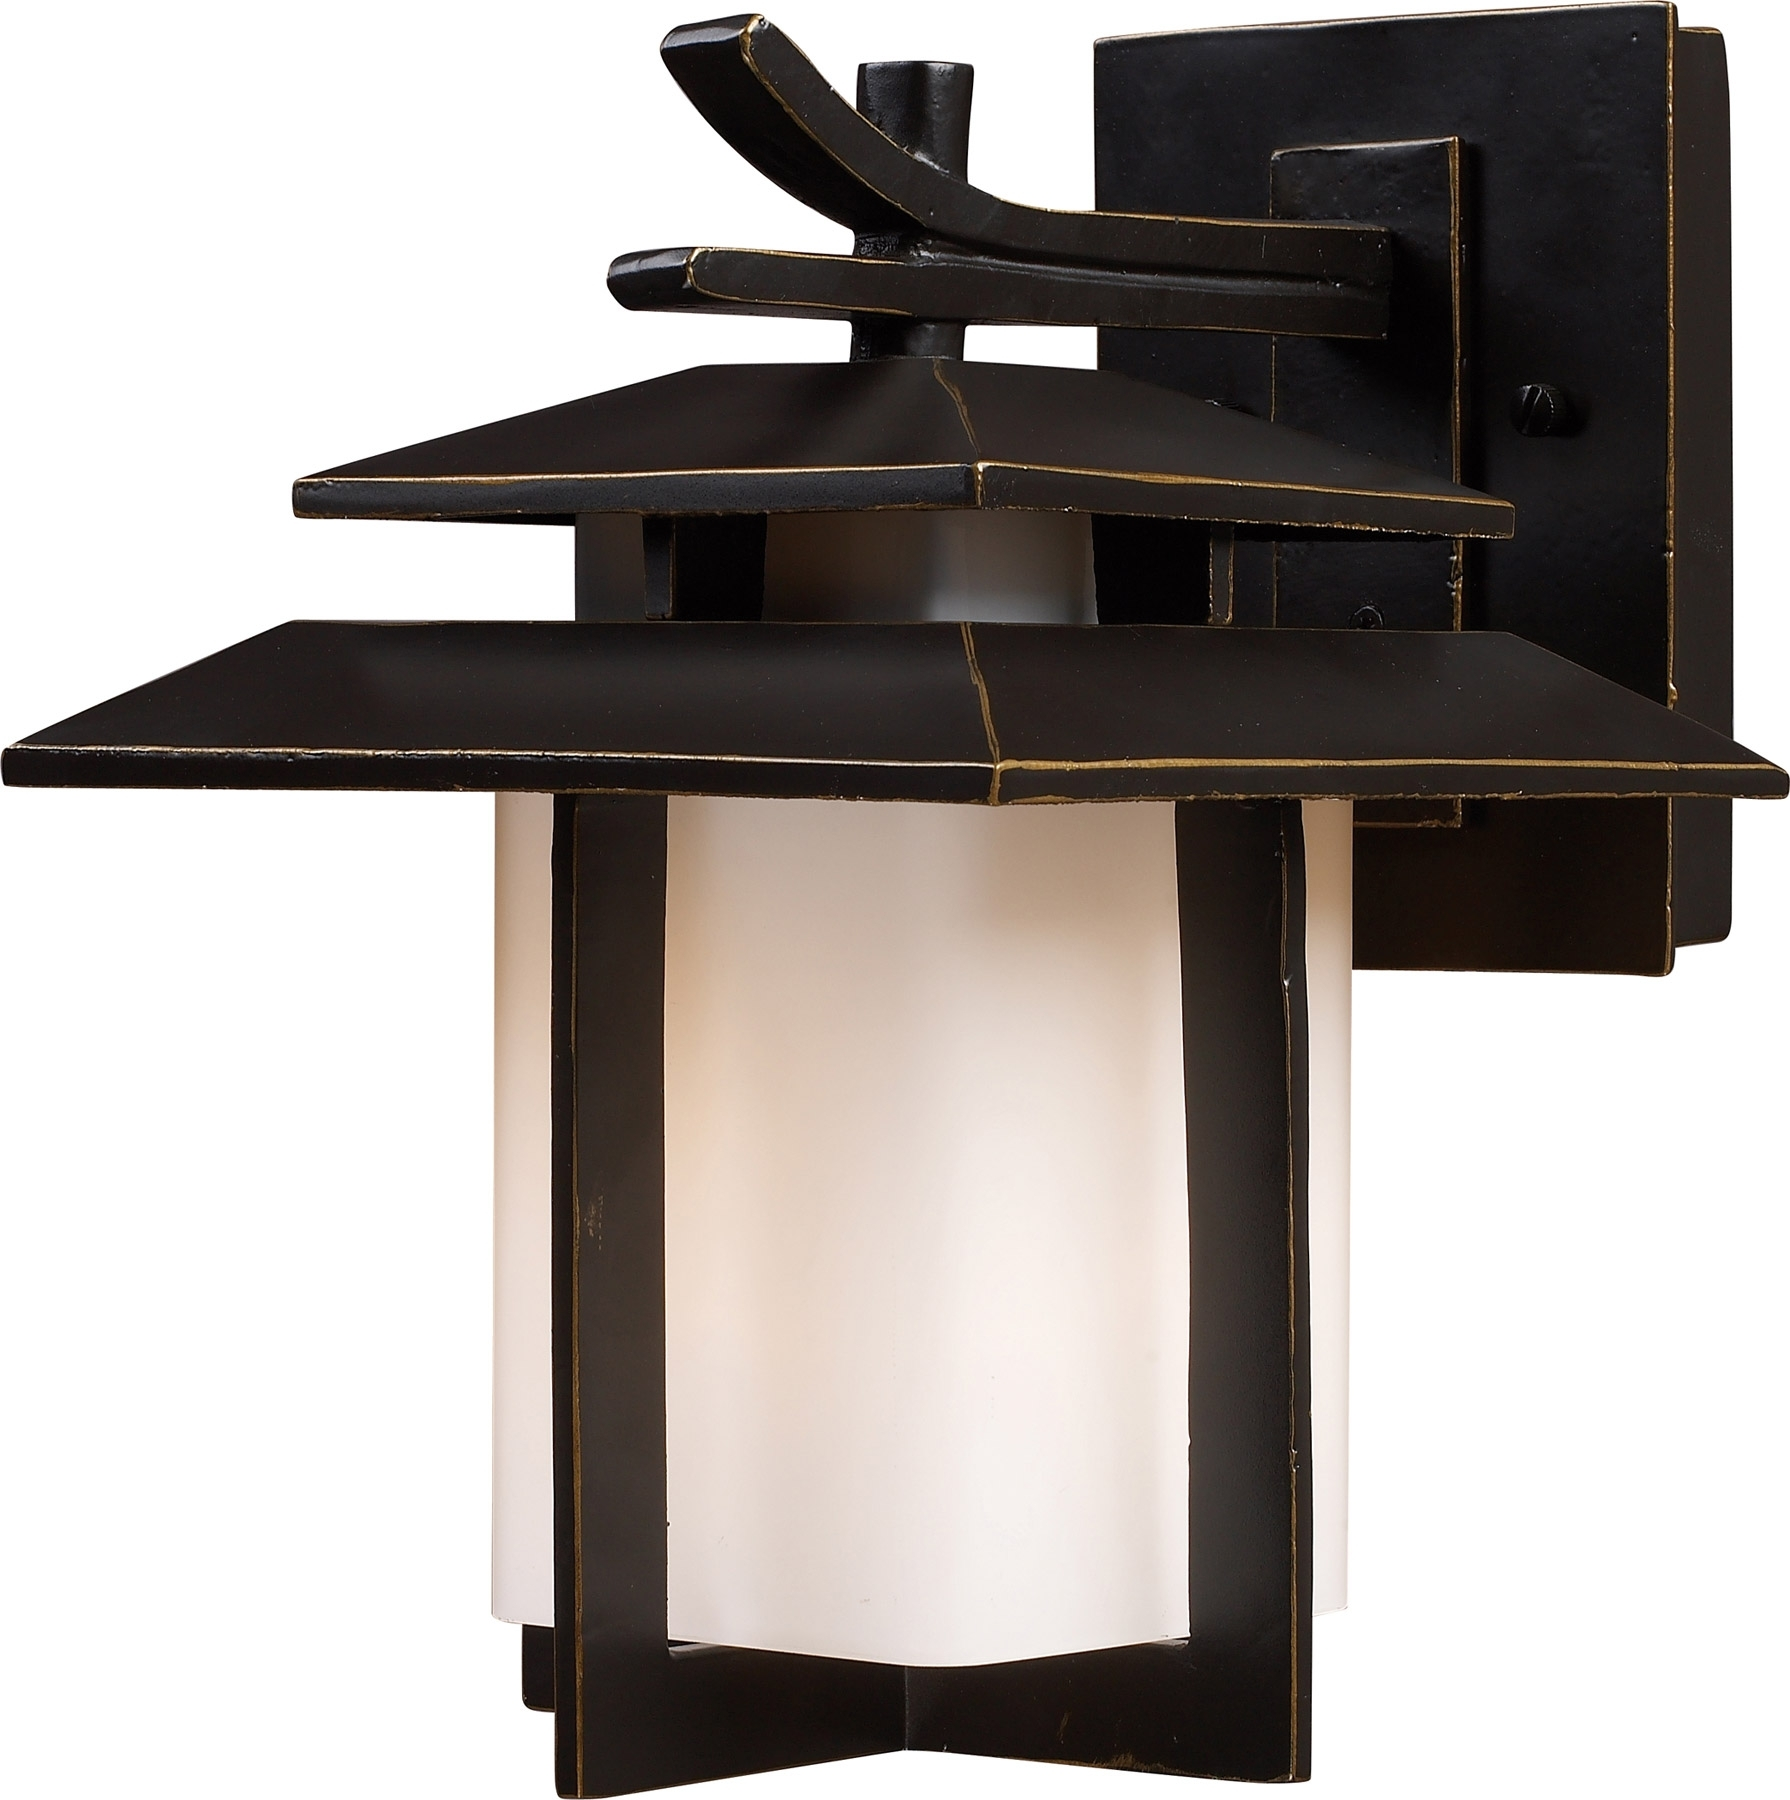 Elk Lighting 42170/1 Kanso Outdoor Wall Mount Lantern inside Outdoor Japanese Lanterns for Sale (Image 3 of 20)